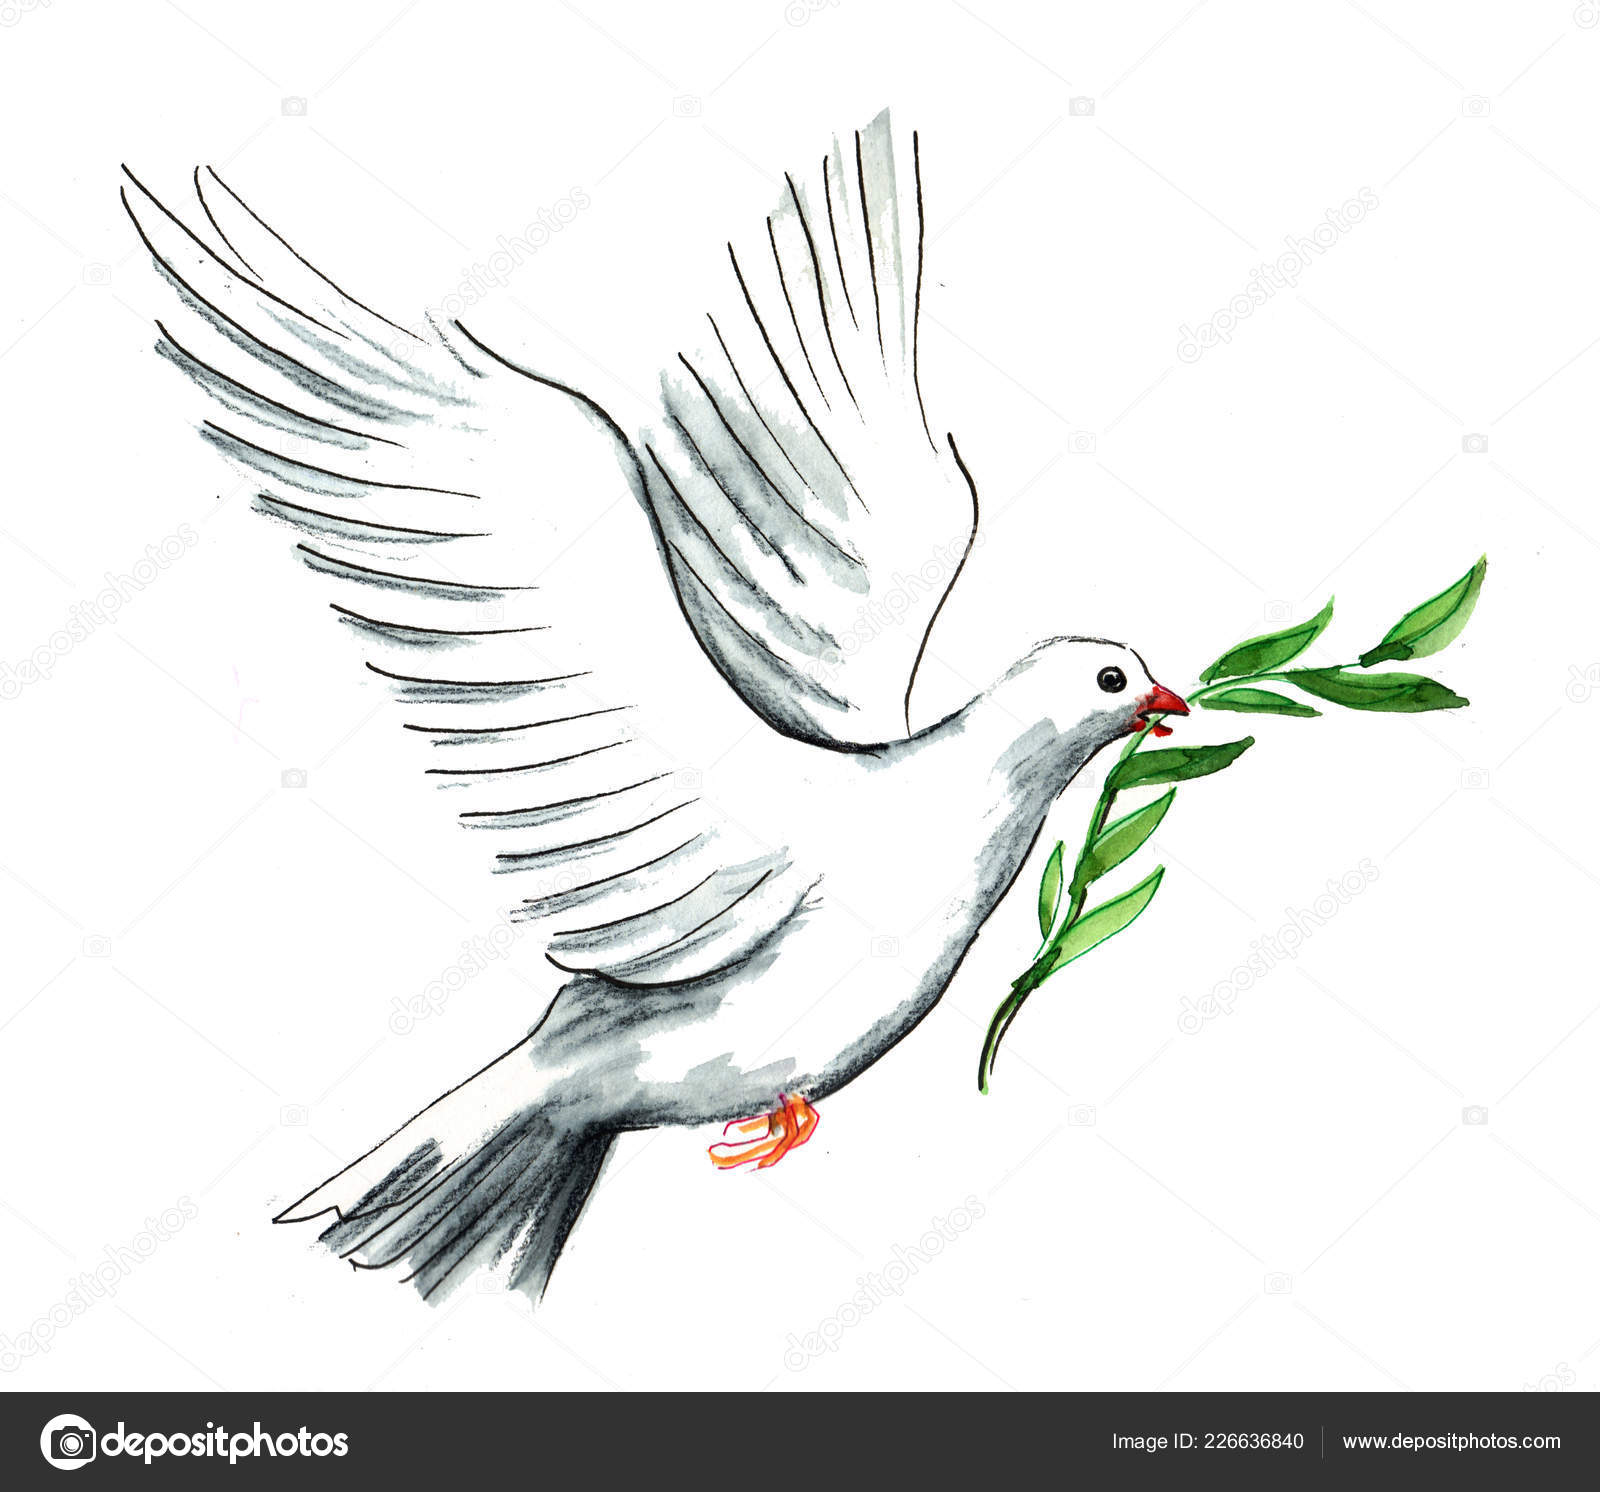 Flying White Dove Olive Branch Its Beak Ink Watercolor Illustration Stock Photo Image By C Alexblacksea 226636840